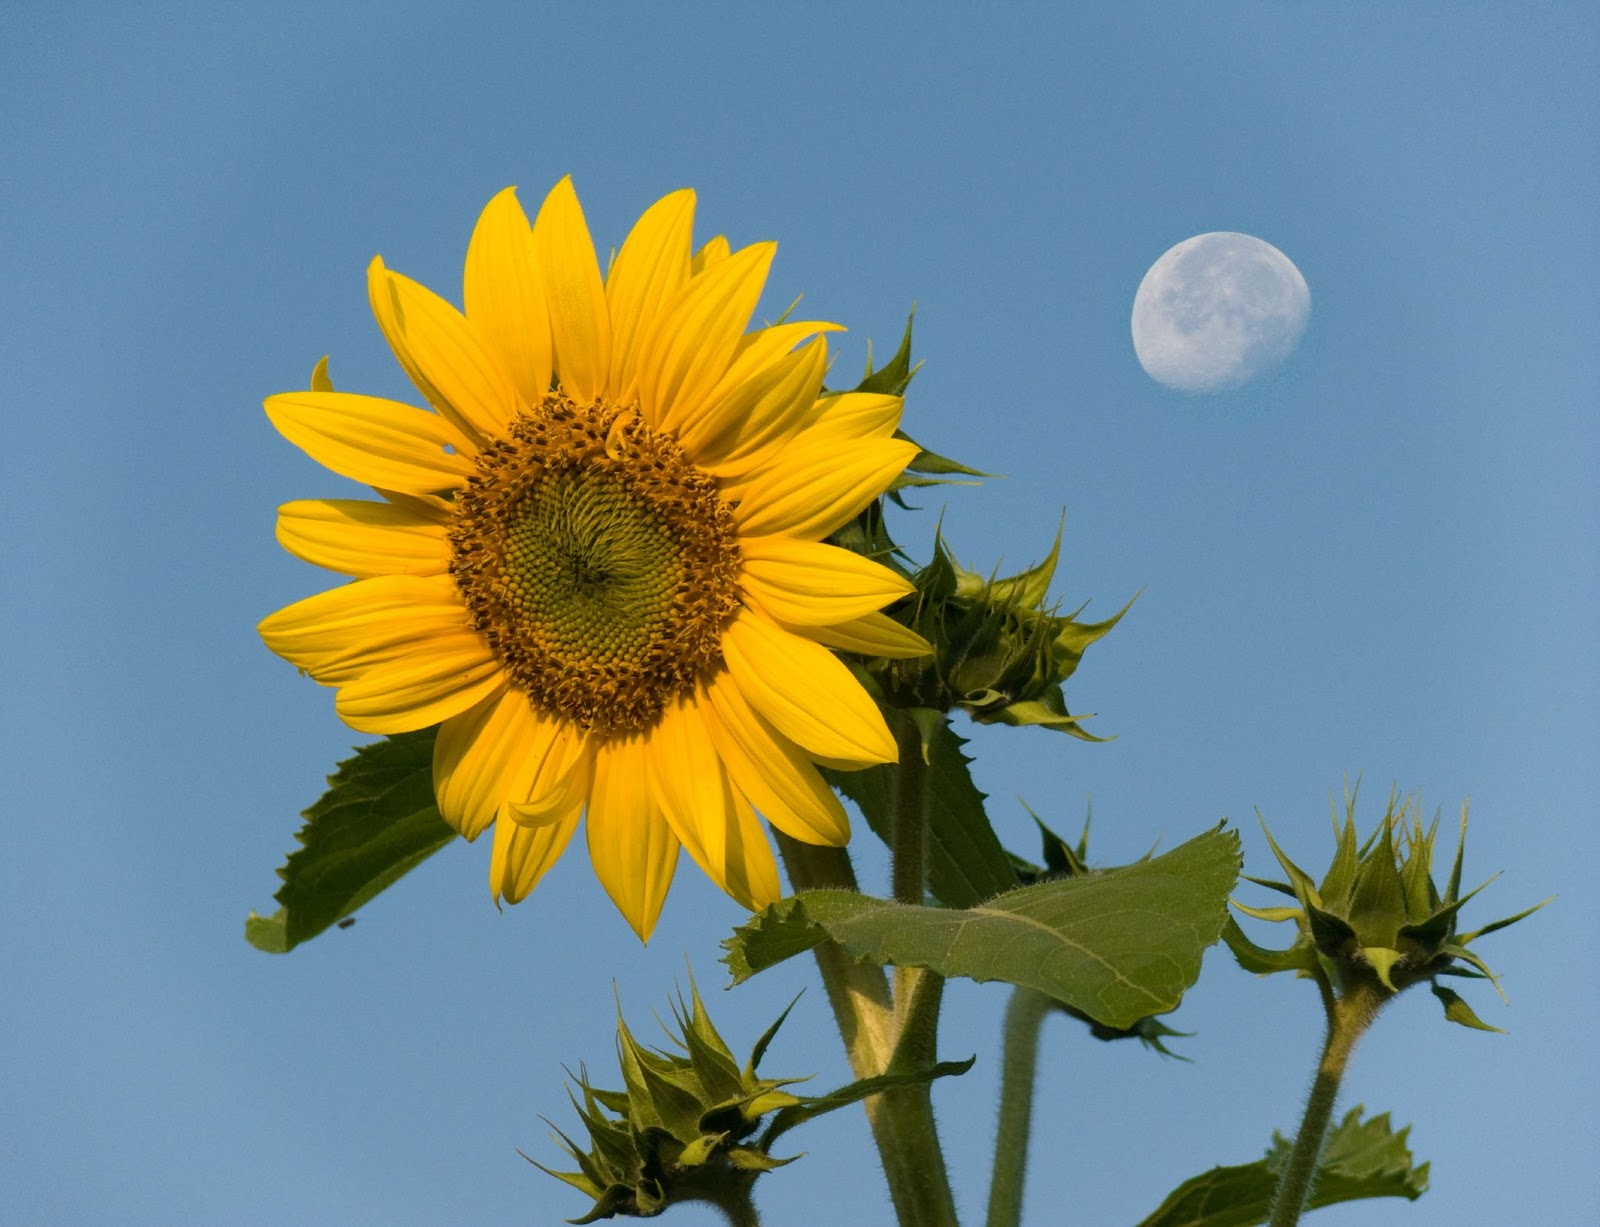 Memory Is The Bursts Of Flowers: Sunflower Wallpaper